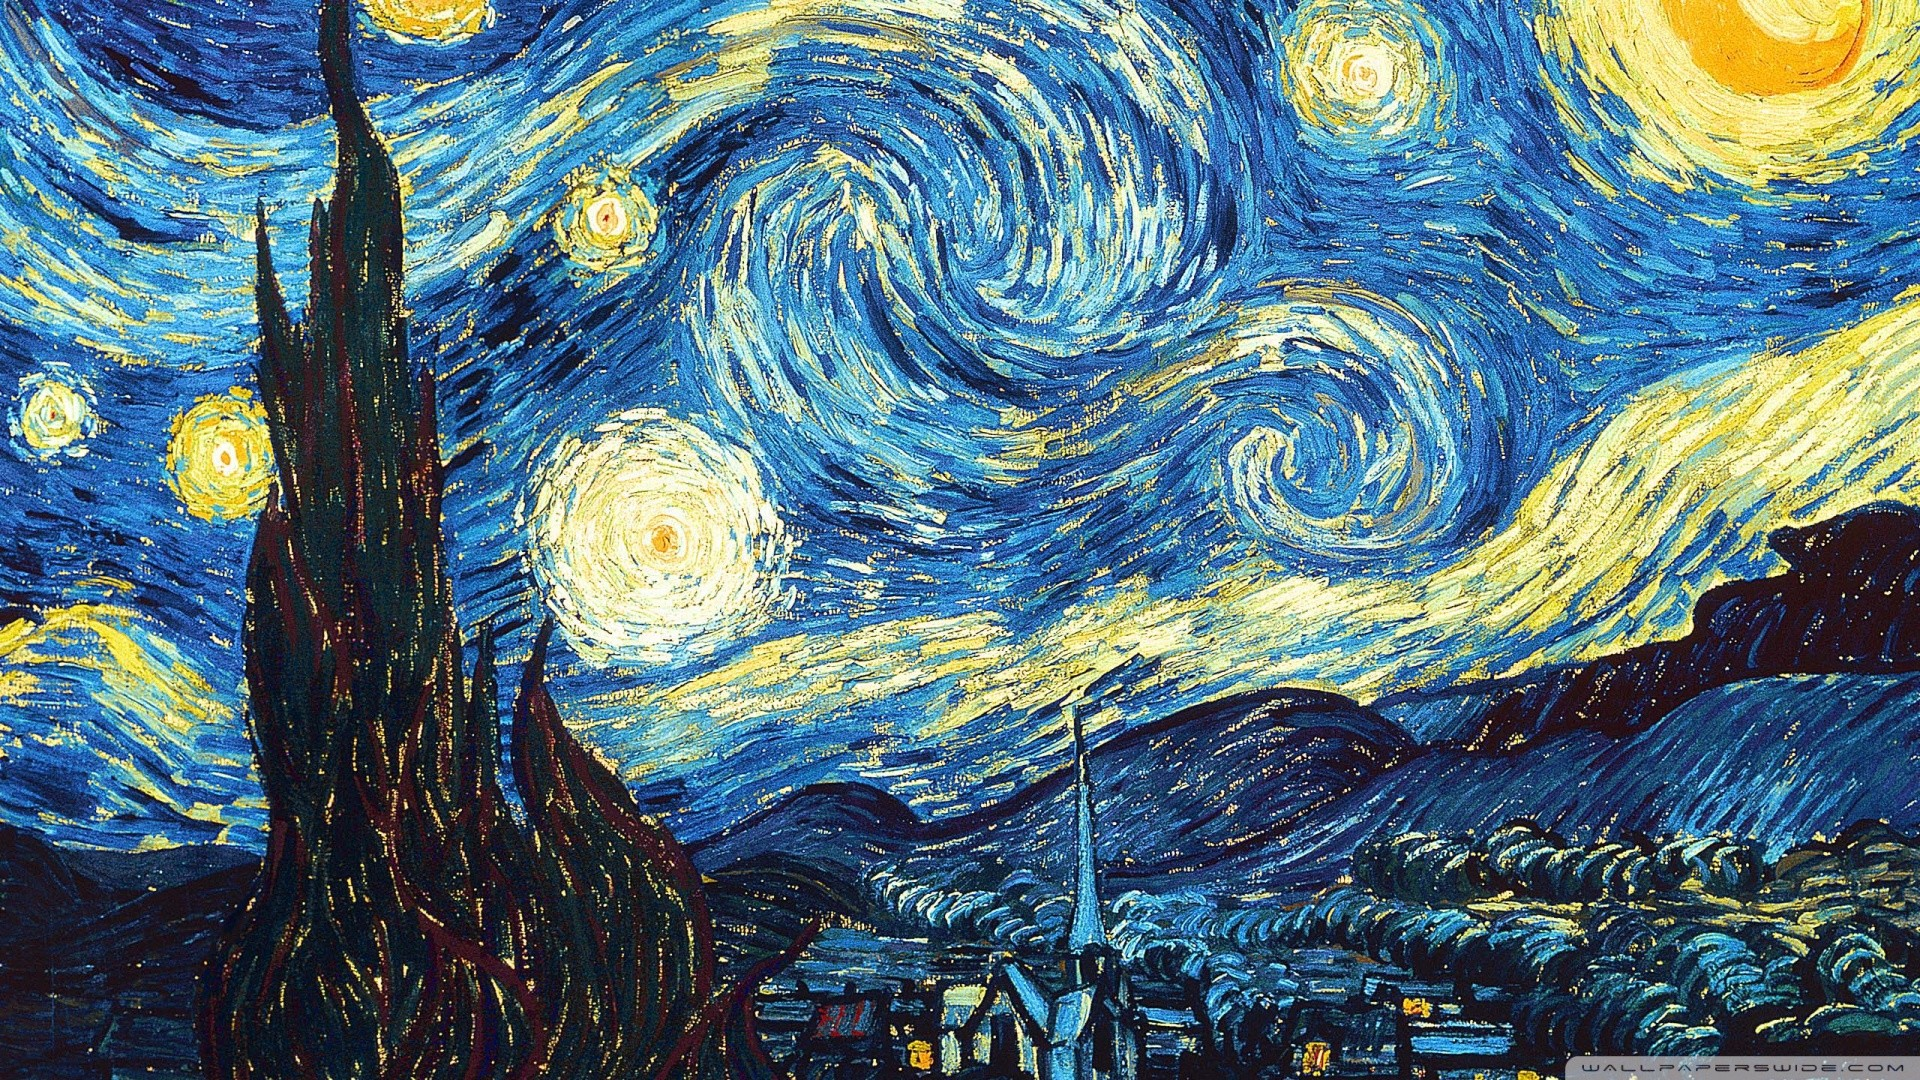 Hd Wallpapers Hd Backgrounds: Van Gogh HD Wallpaper (43+ Images